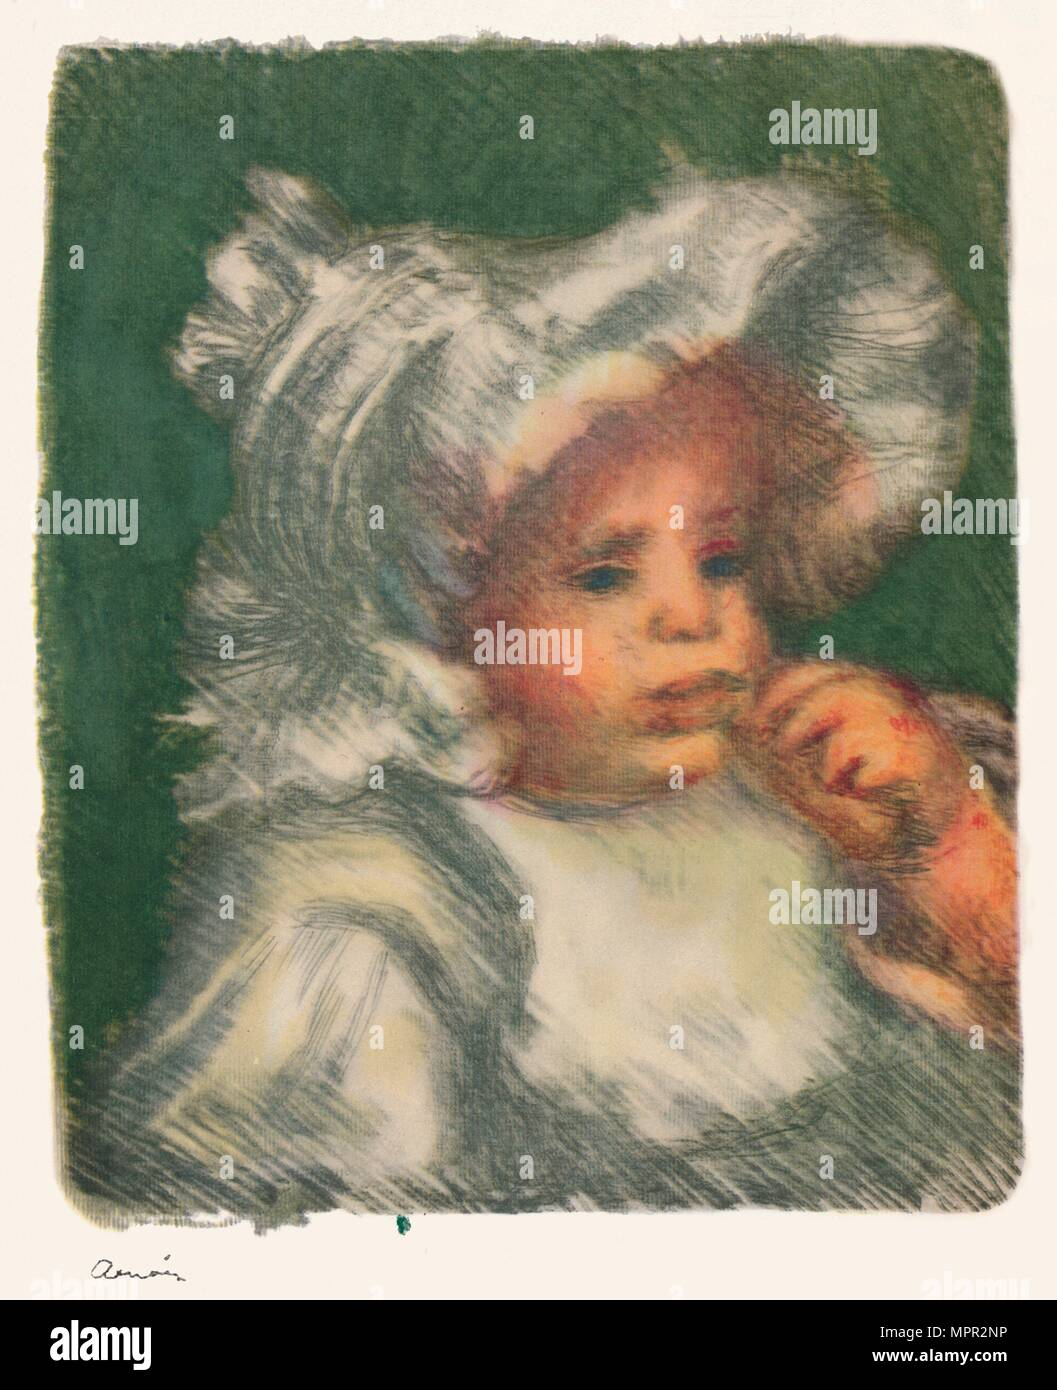 'The Child with the Biscuit', c.1898-1899, (1946). Artist: Pierre-Auguste Renoir. - Stock Image